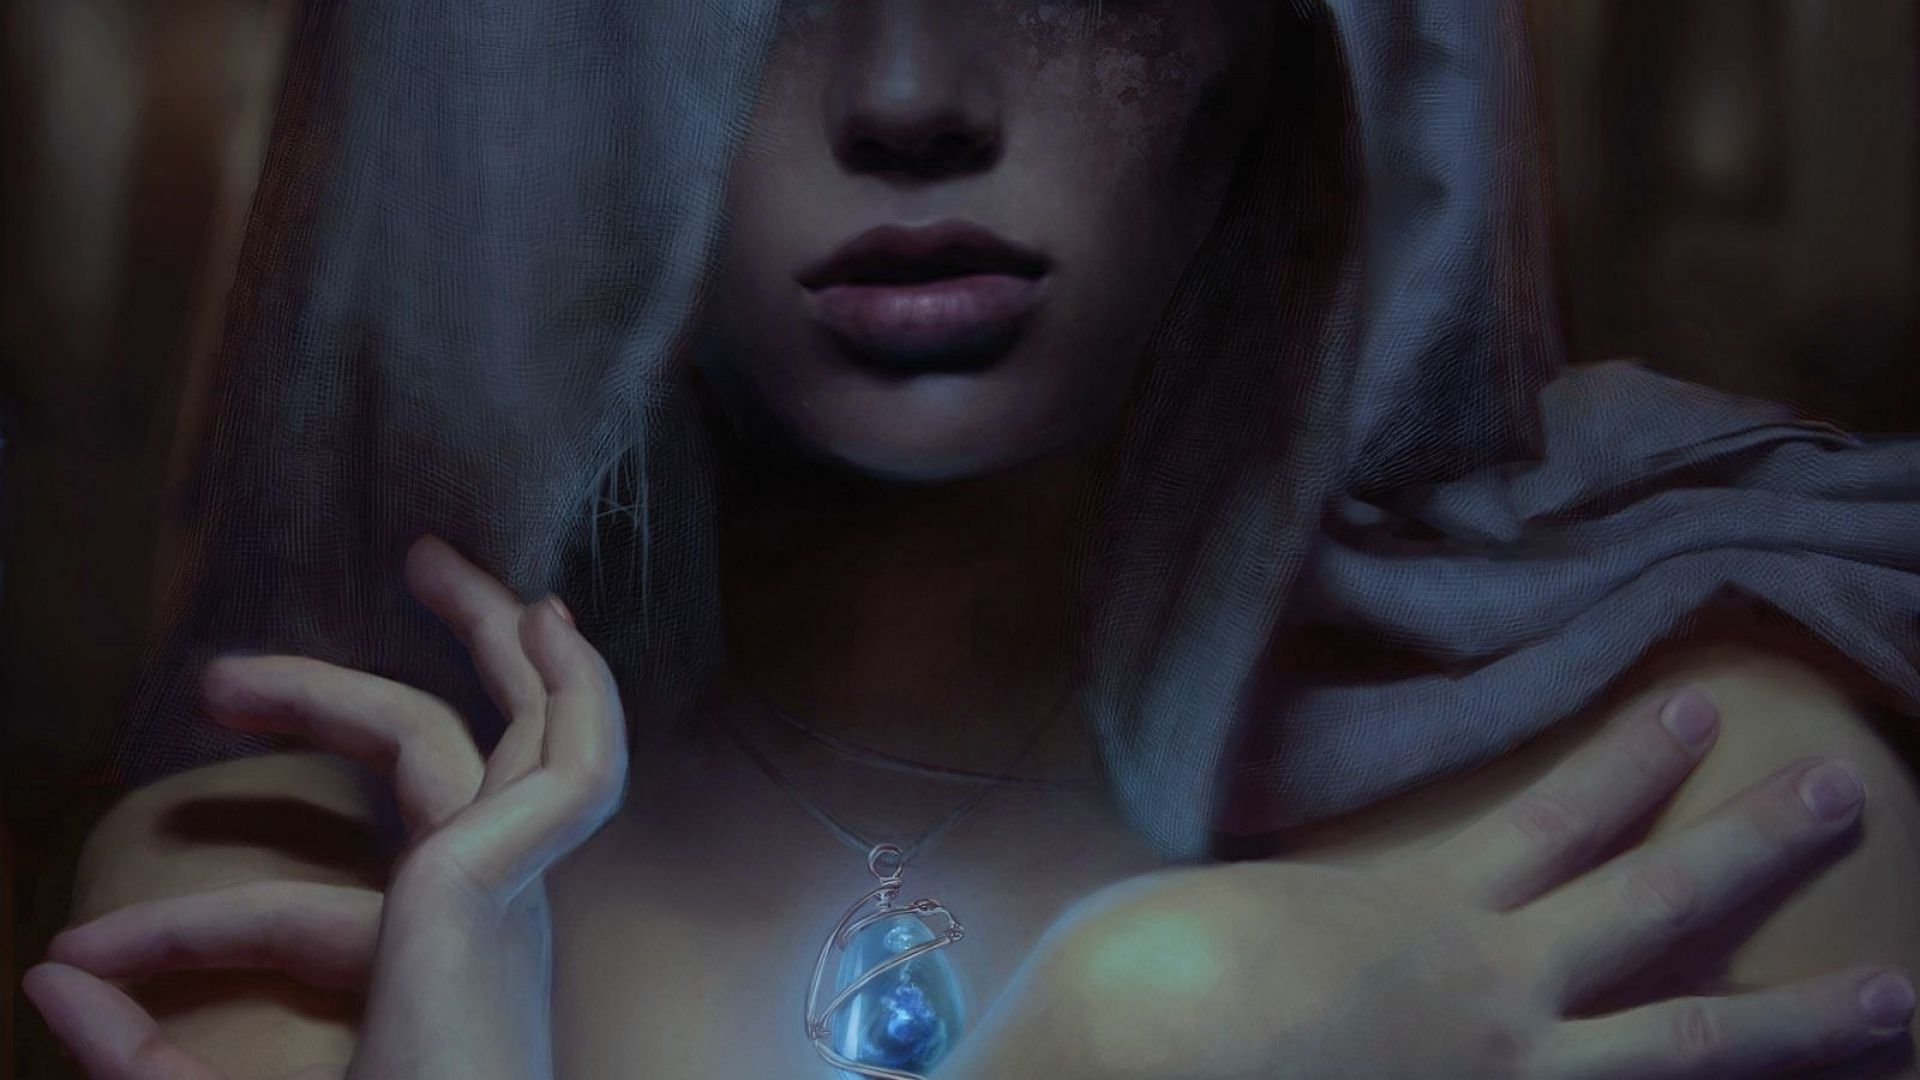 girl-person-amulet-magic-hands-hood-1920x1080